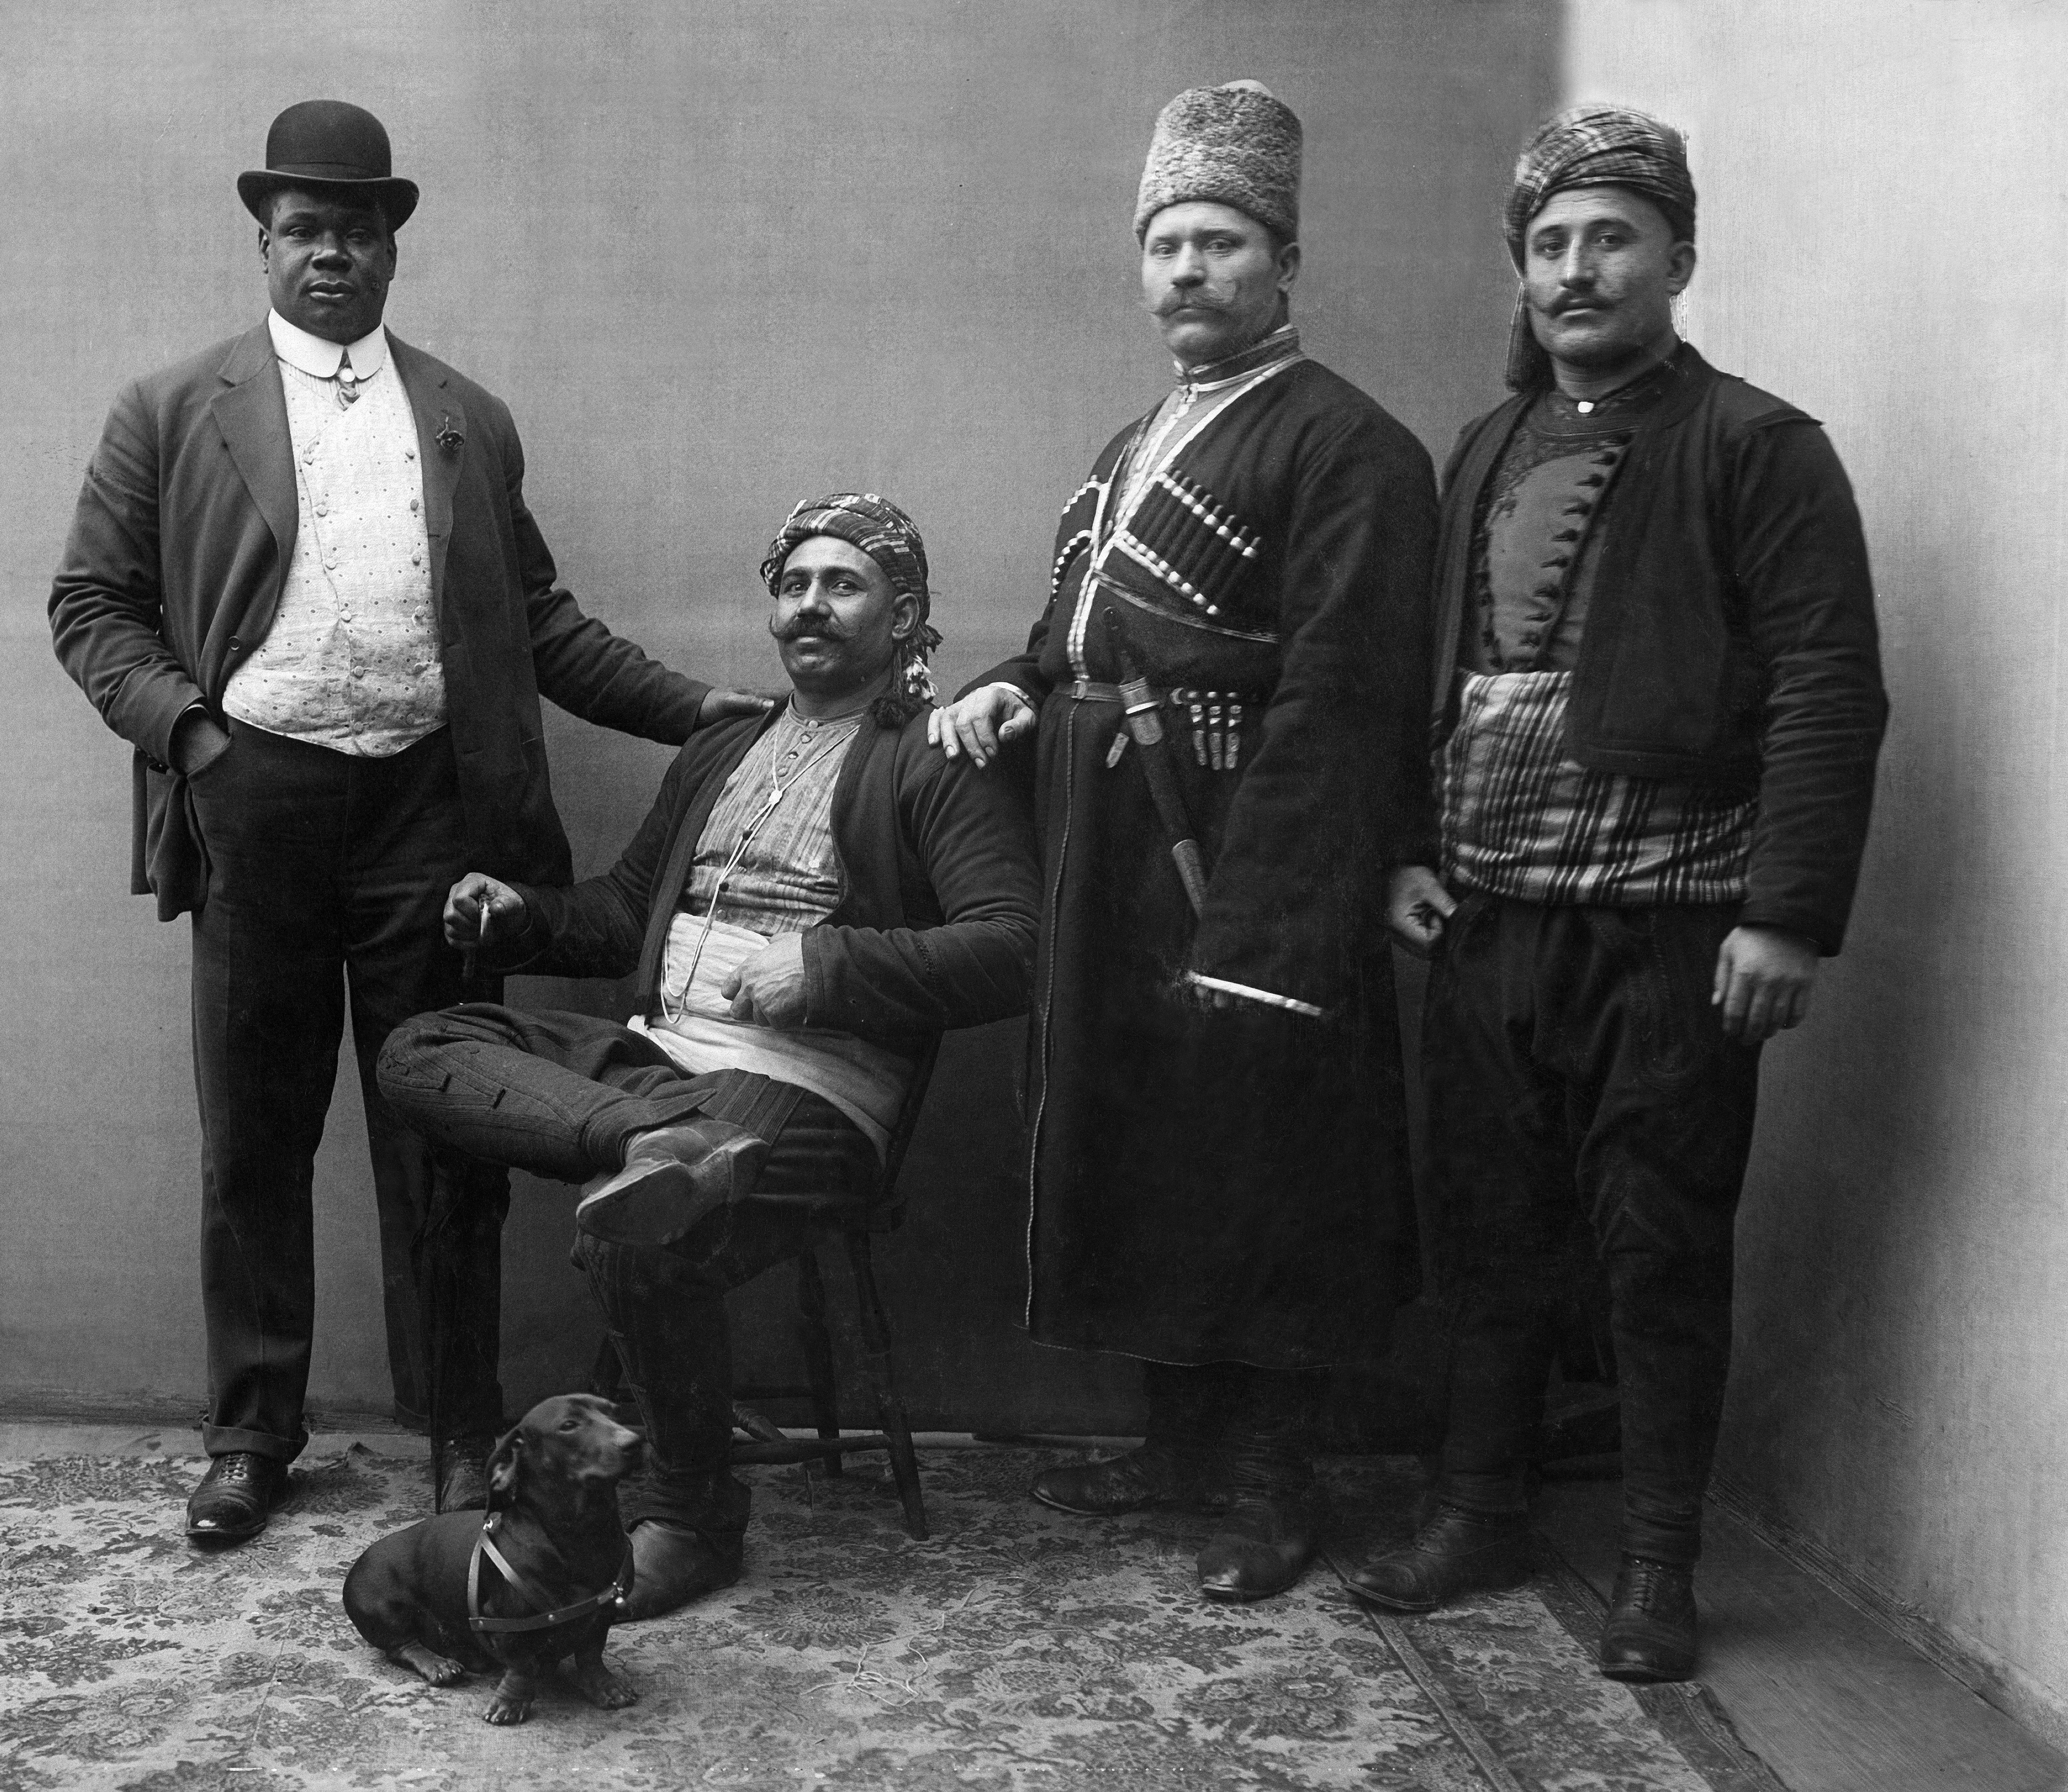 wrestler of the circus 'Busch', f.r.t.l. Anglio (Martinique), Pengal (Turkey), Padonbny (Russia) and Kara Safi (Turkey) - Published by: 'Berliner Illustrirte Zeitung' 12/1907Vintage property of ullstein bild